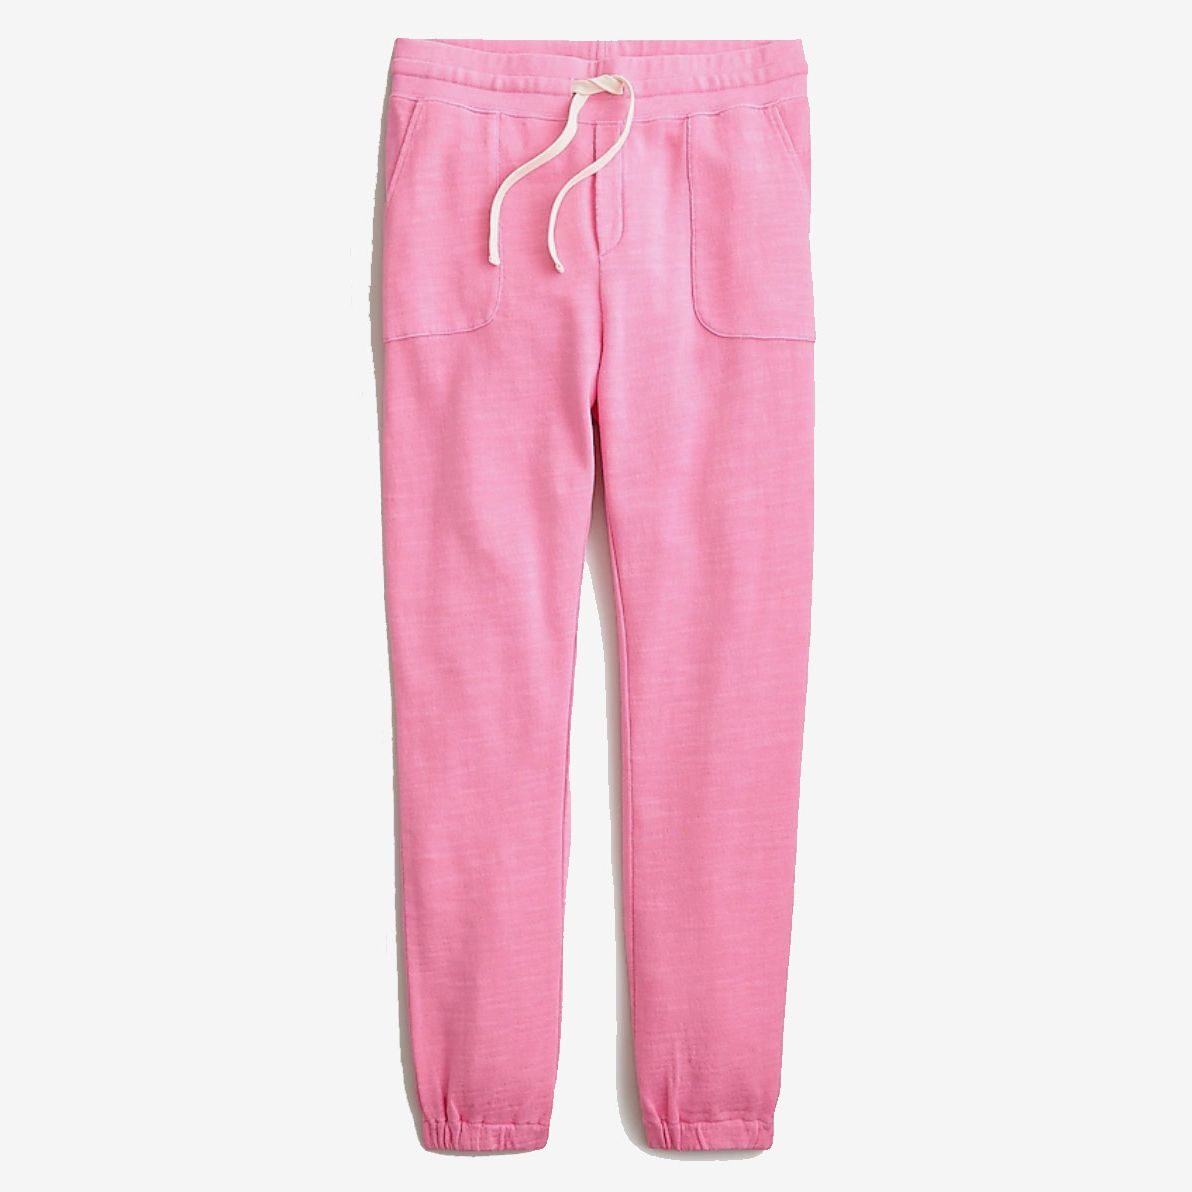 Roli-Land Unisex Teens All I Care About is My Dog Elastic Gym Sweatpants for Boys Gift with Pockets Pajamas